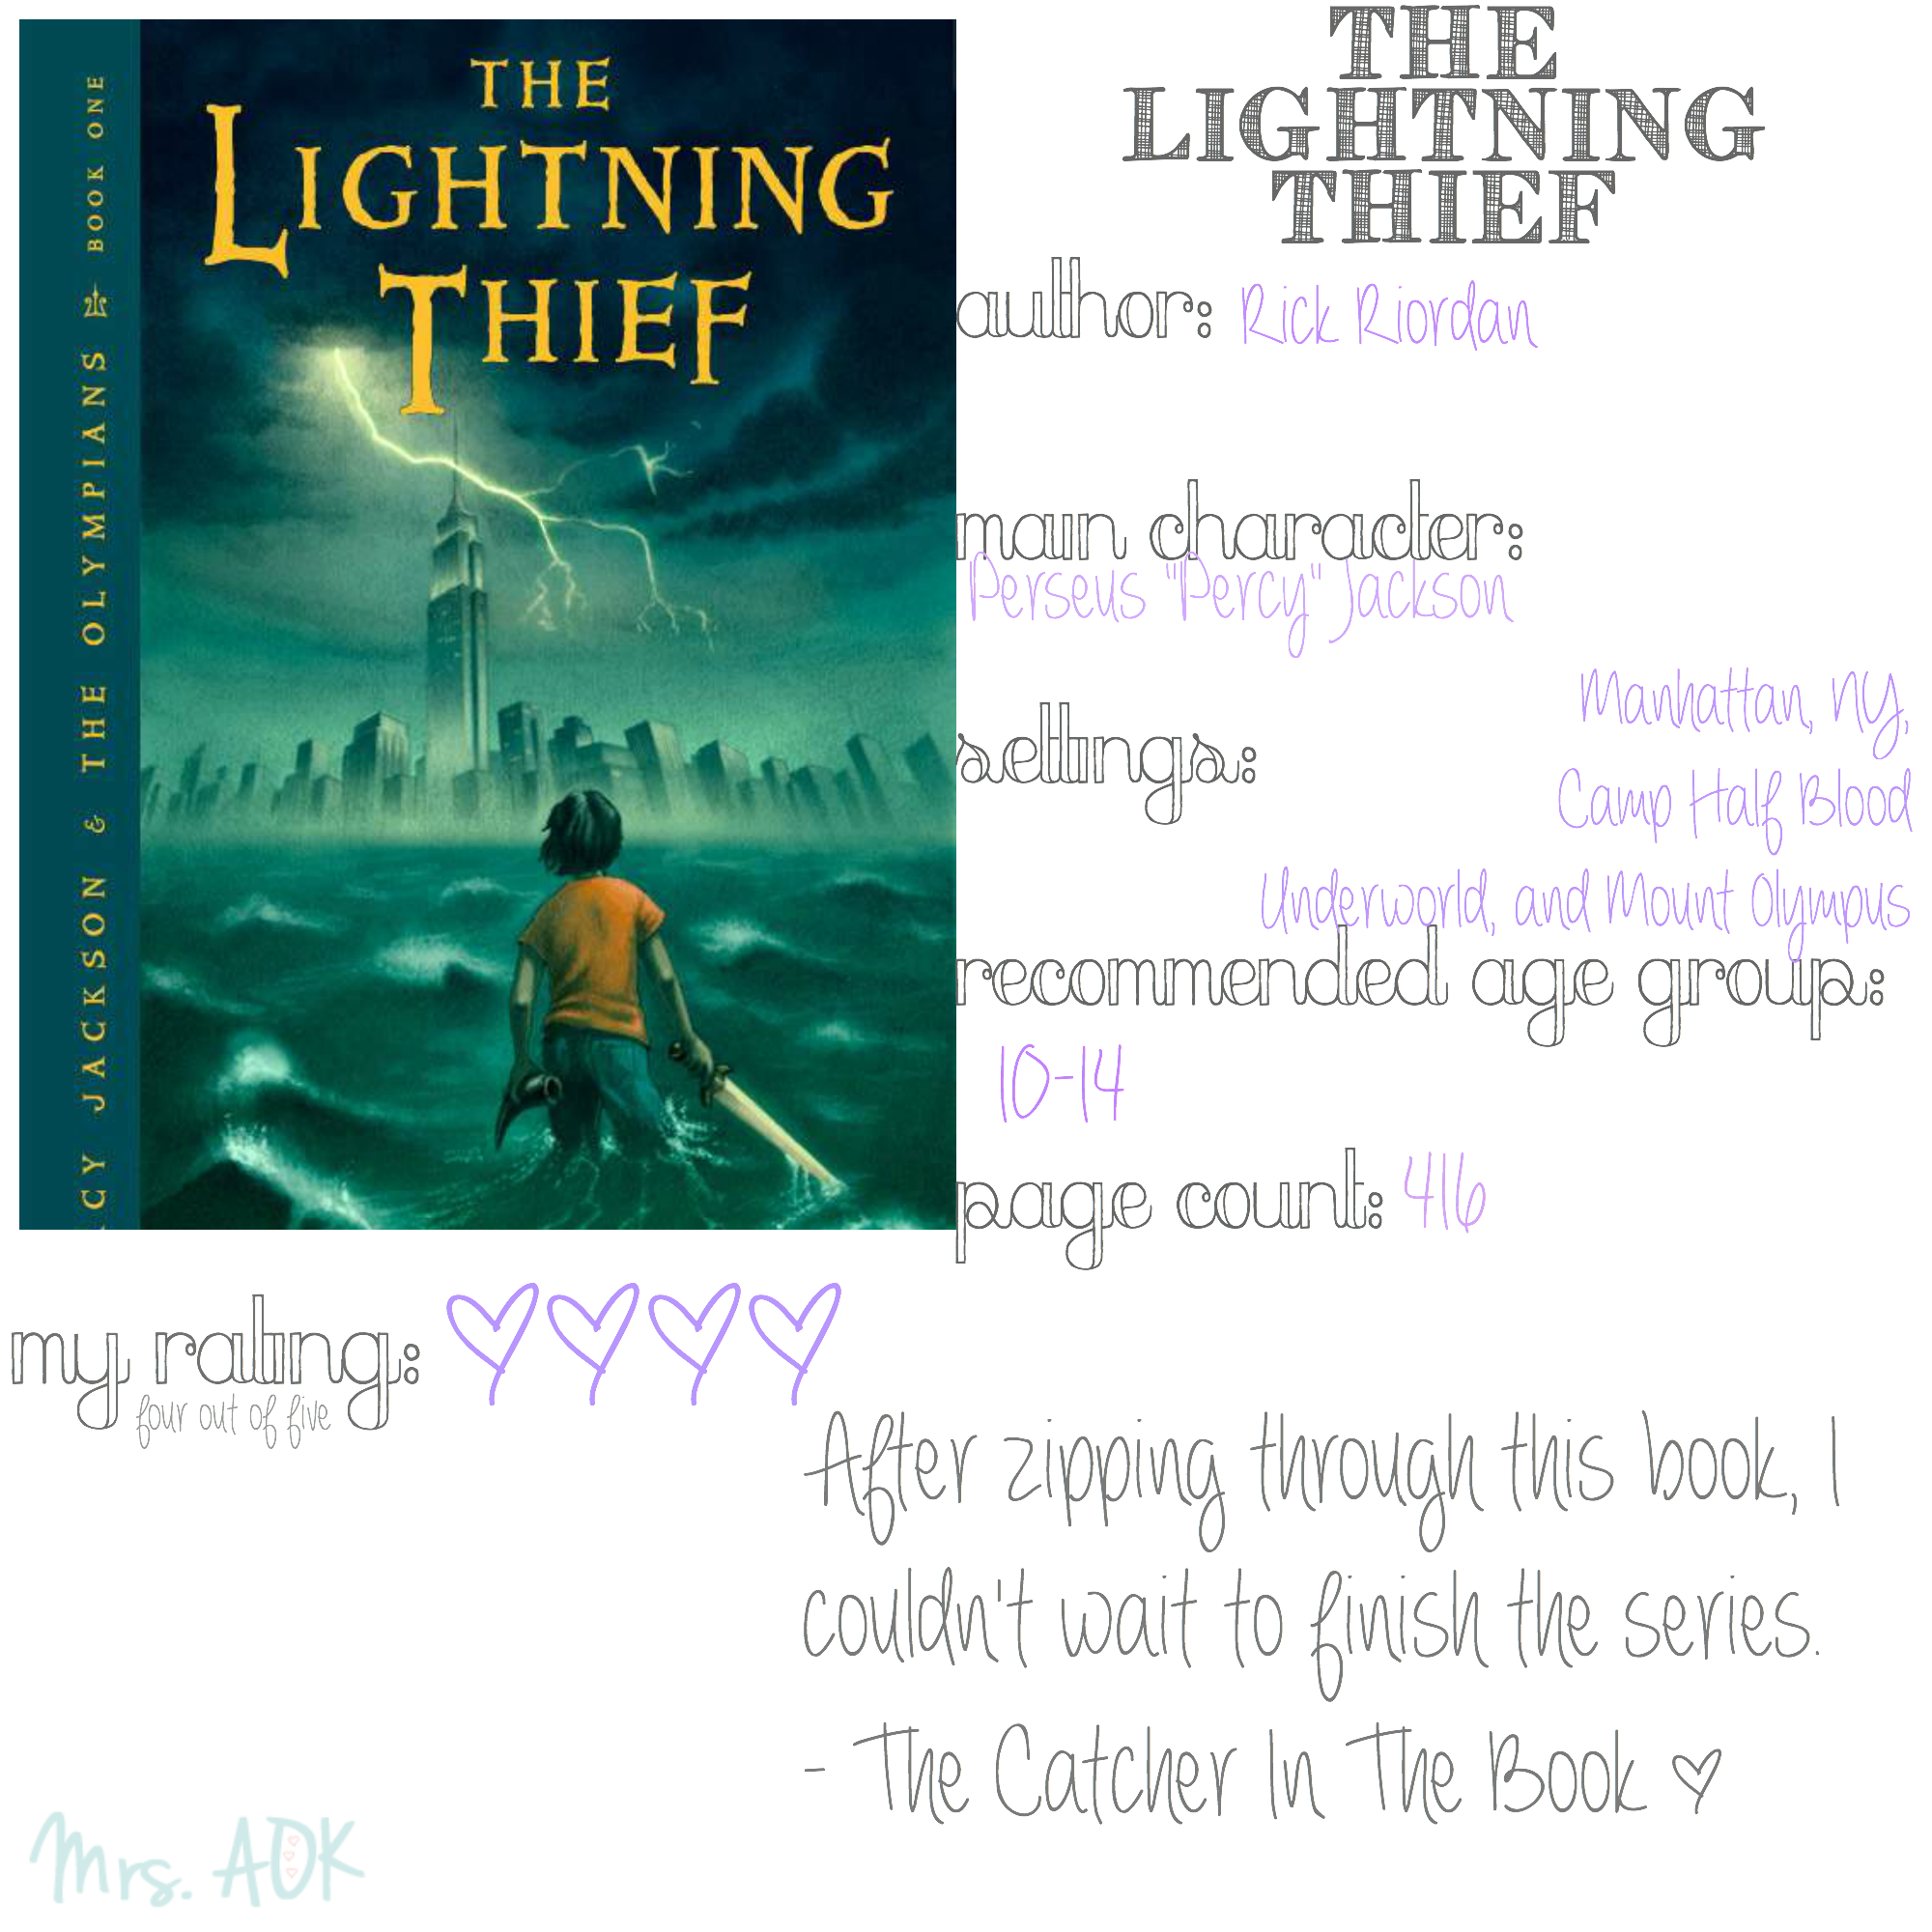 percy jackson and the lightning thief book report Percy jackson & the olympians: the lightning thief  percy jackson & the olympians: the lightning thief (2010)  book-film franchise universes you want to live in:.